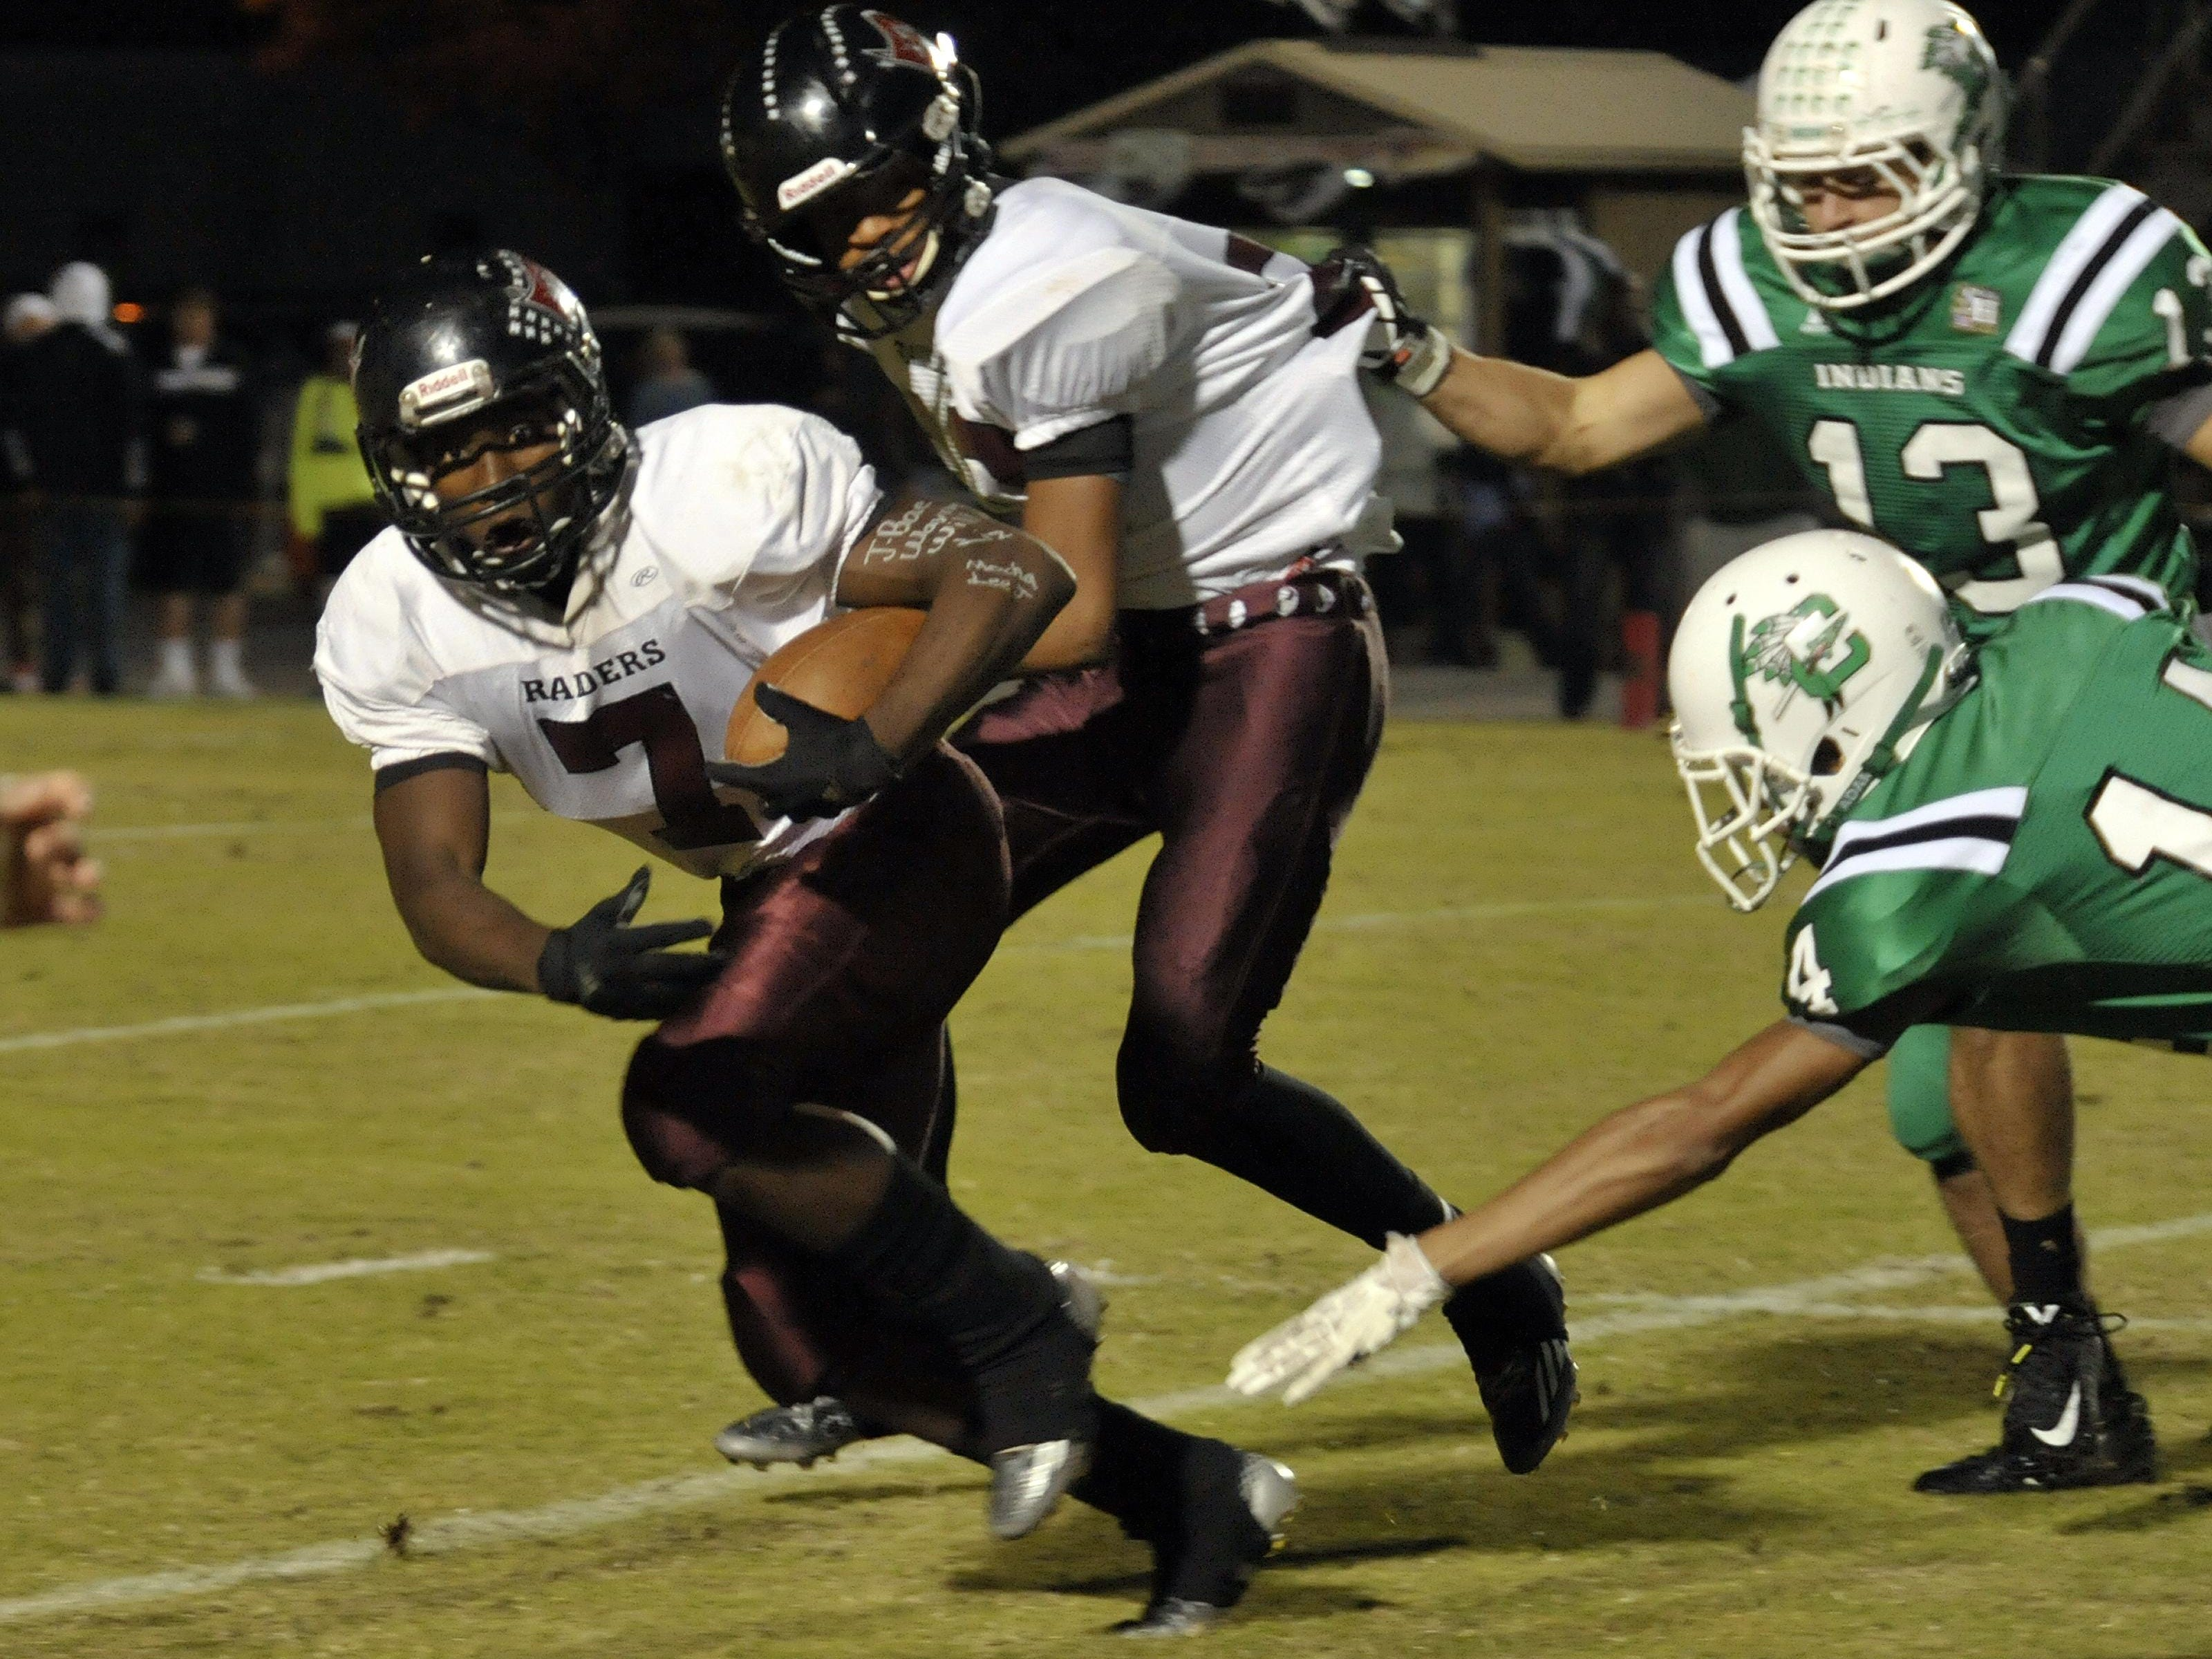 Navarre High tailback Michael Carter has been hard at work this offseason rehabbing a season-ending injury that cut short his junior campaign. On Monday, he announced his commitment to the University of North Carolina.